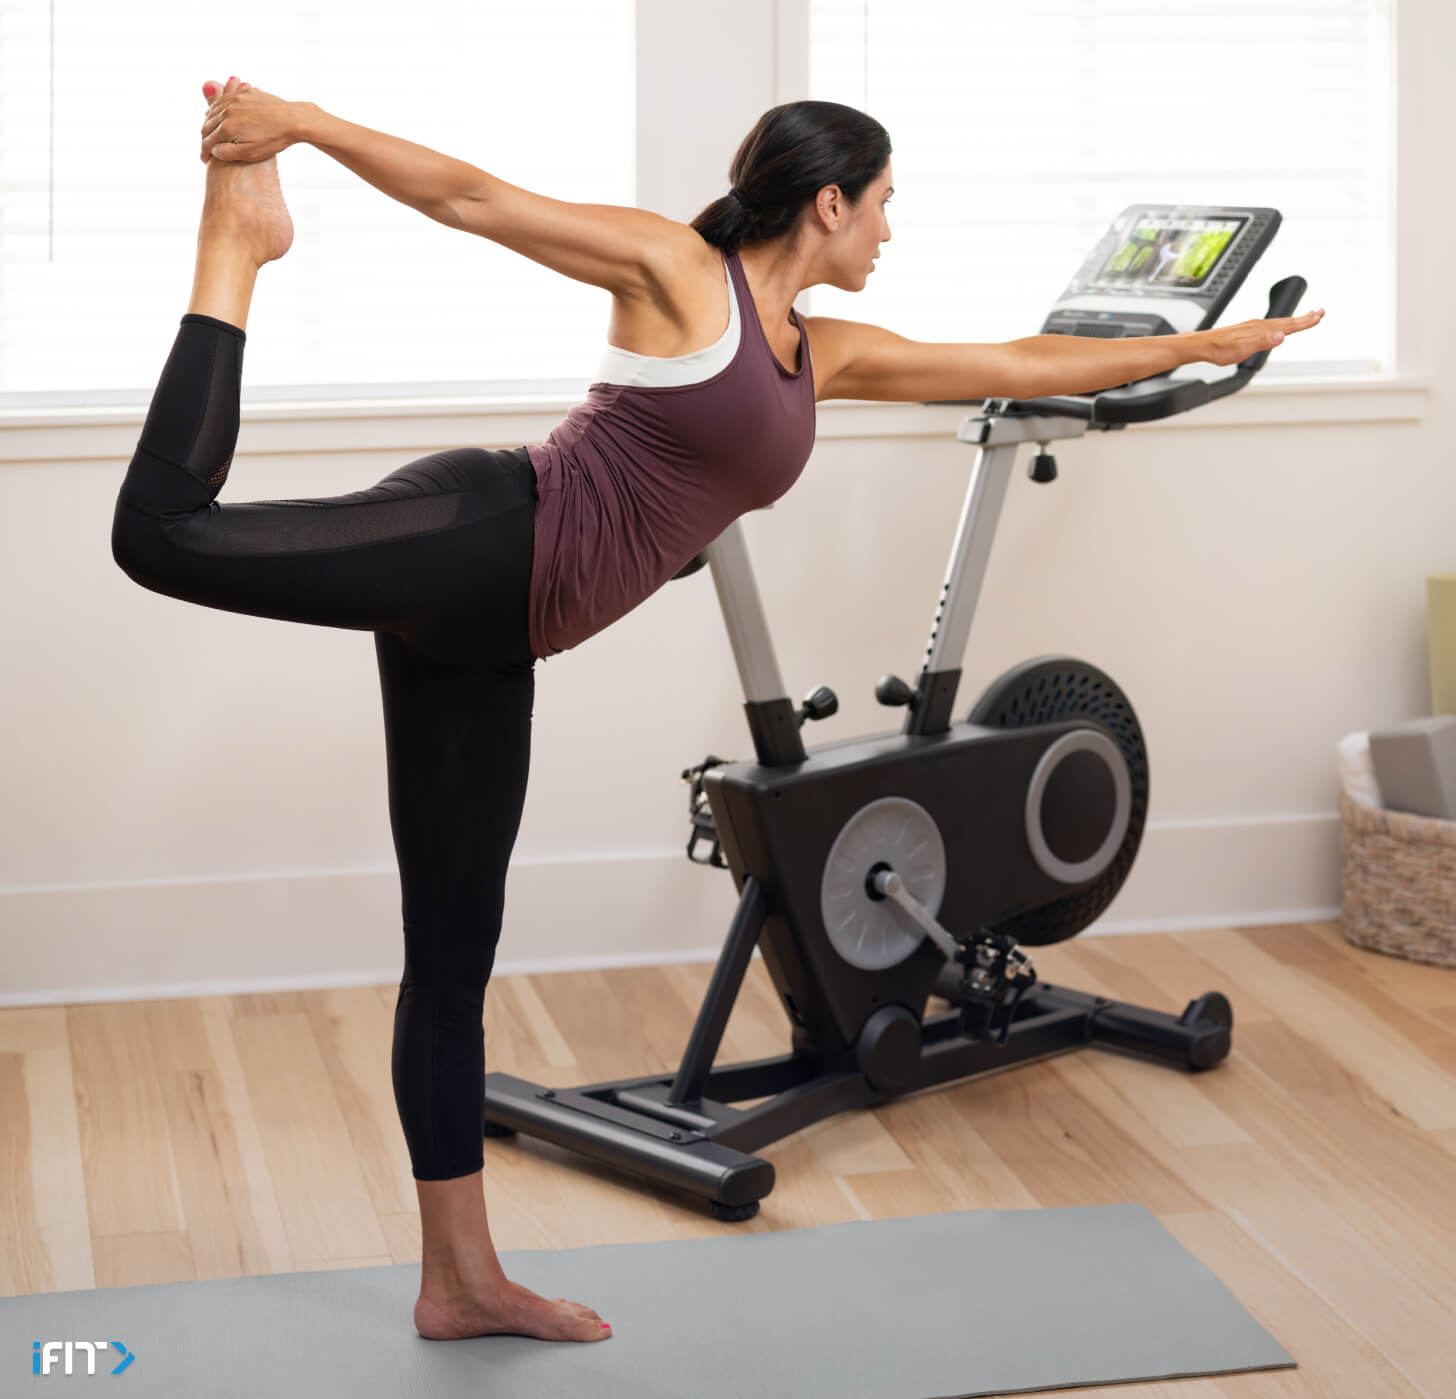 Woman works out with iFIT mindfulness exercises